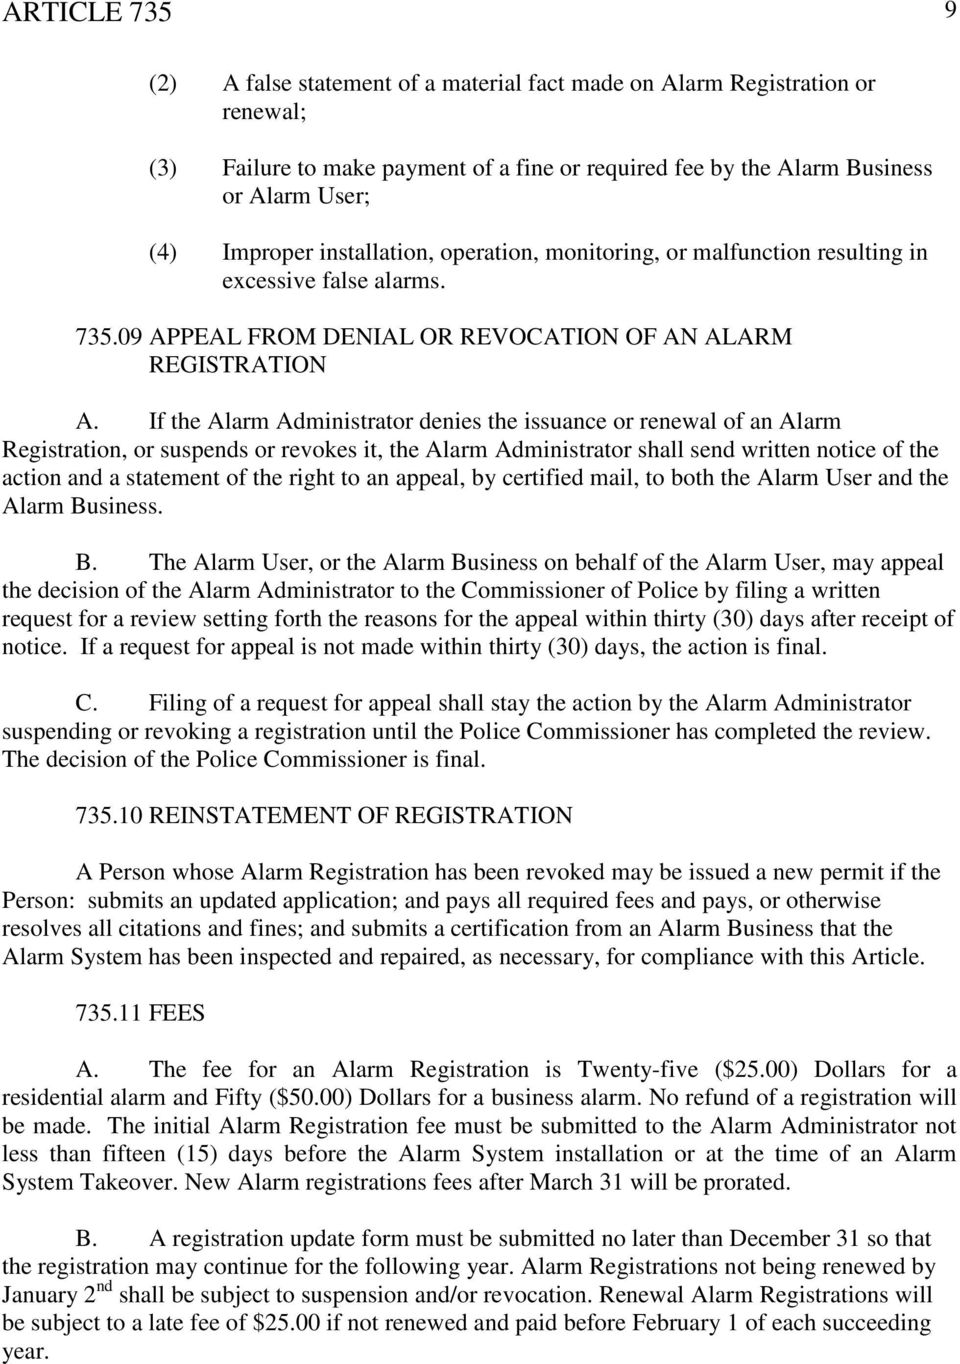 If the Alarm Administrator denies the issuance or renewal of an Alarm Registration, or suspends or revokes it, the Alarm Administrator shall send written notice of the action and a statement of the